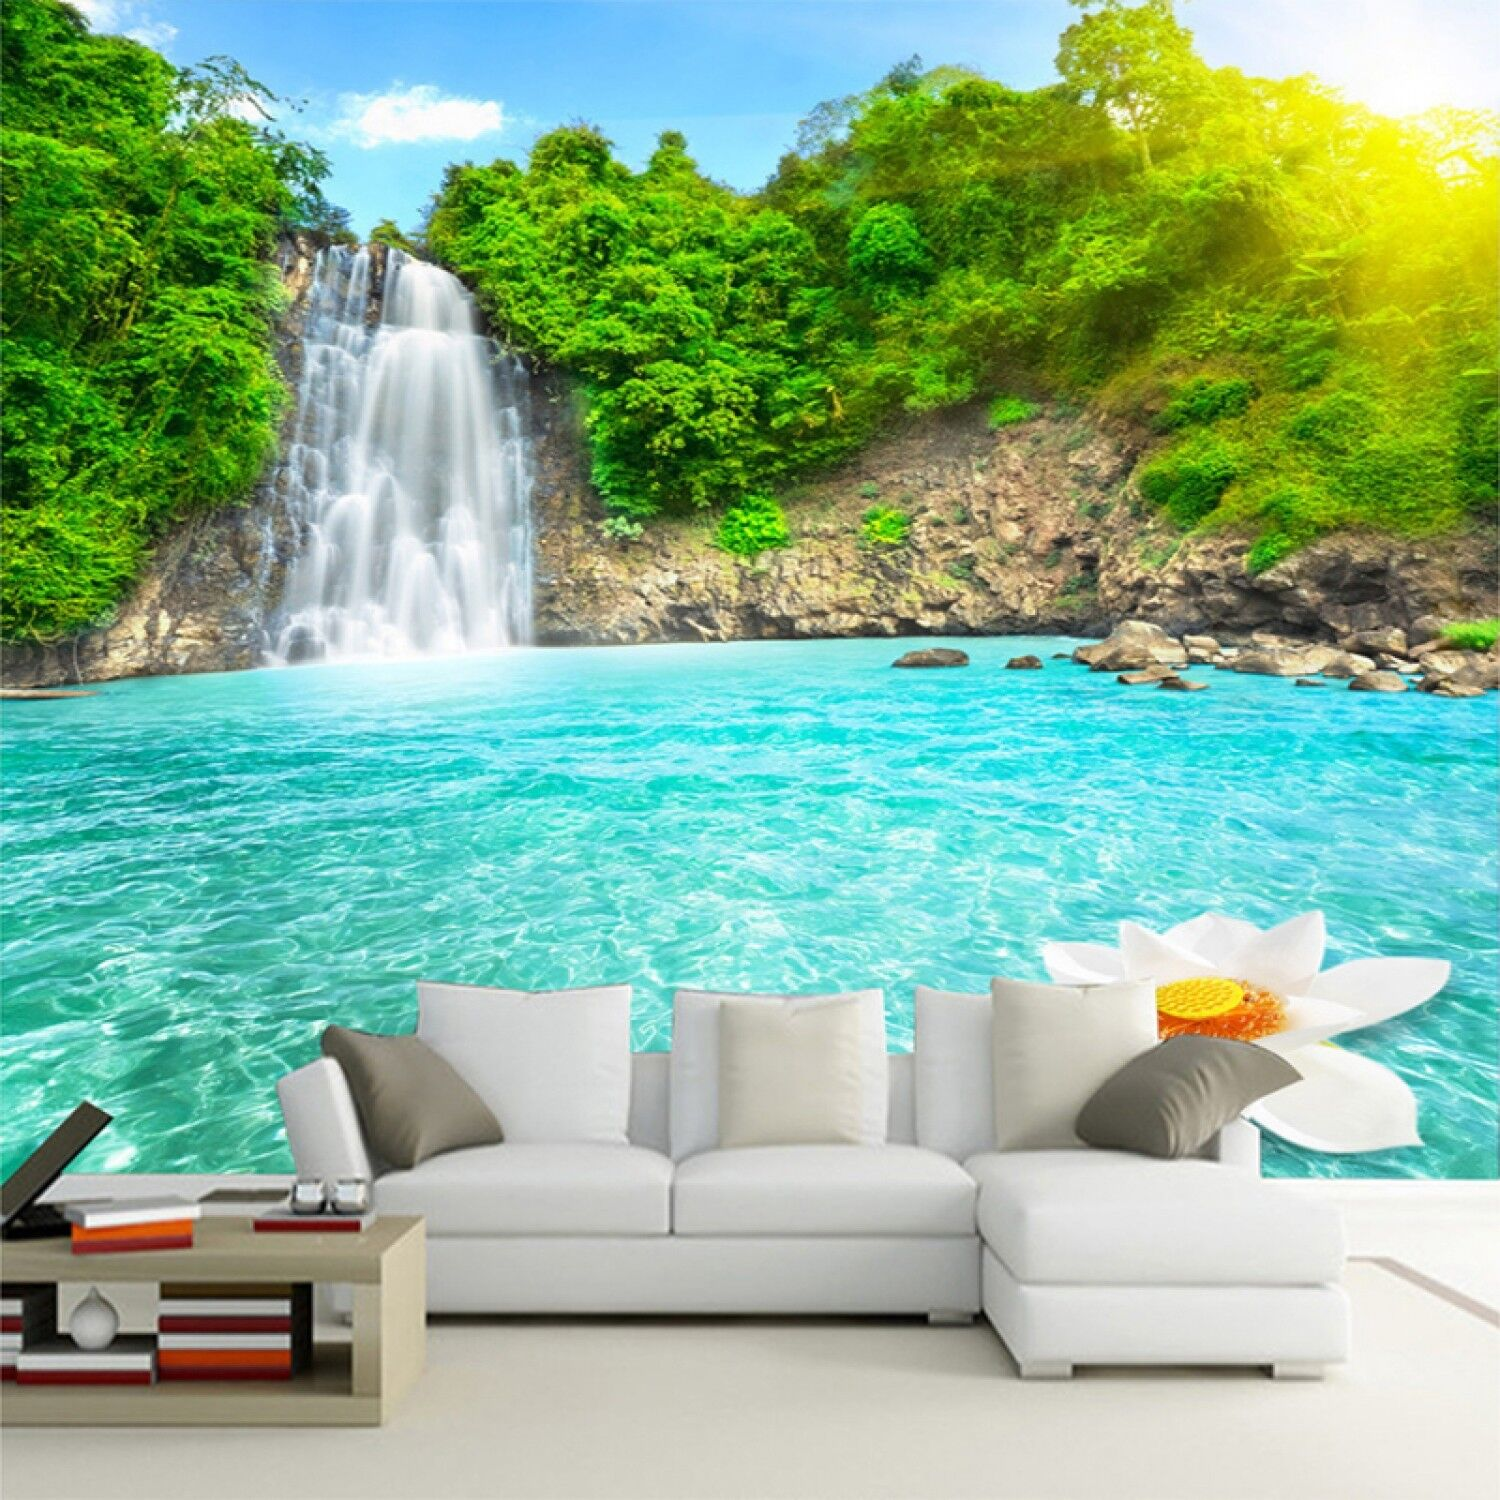 Scenary Wallpaper Details About Natural Scenery 3d Wall Mural Forest Waterfalls Pools Photo Wallpaper 3d Room